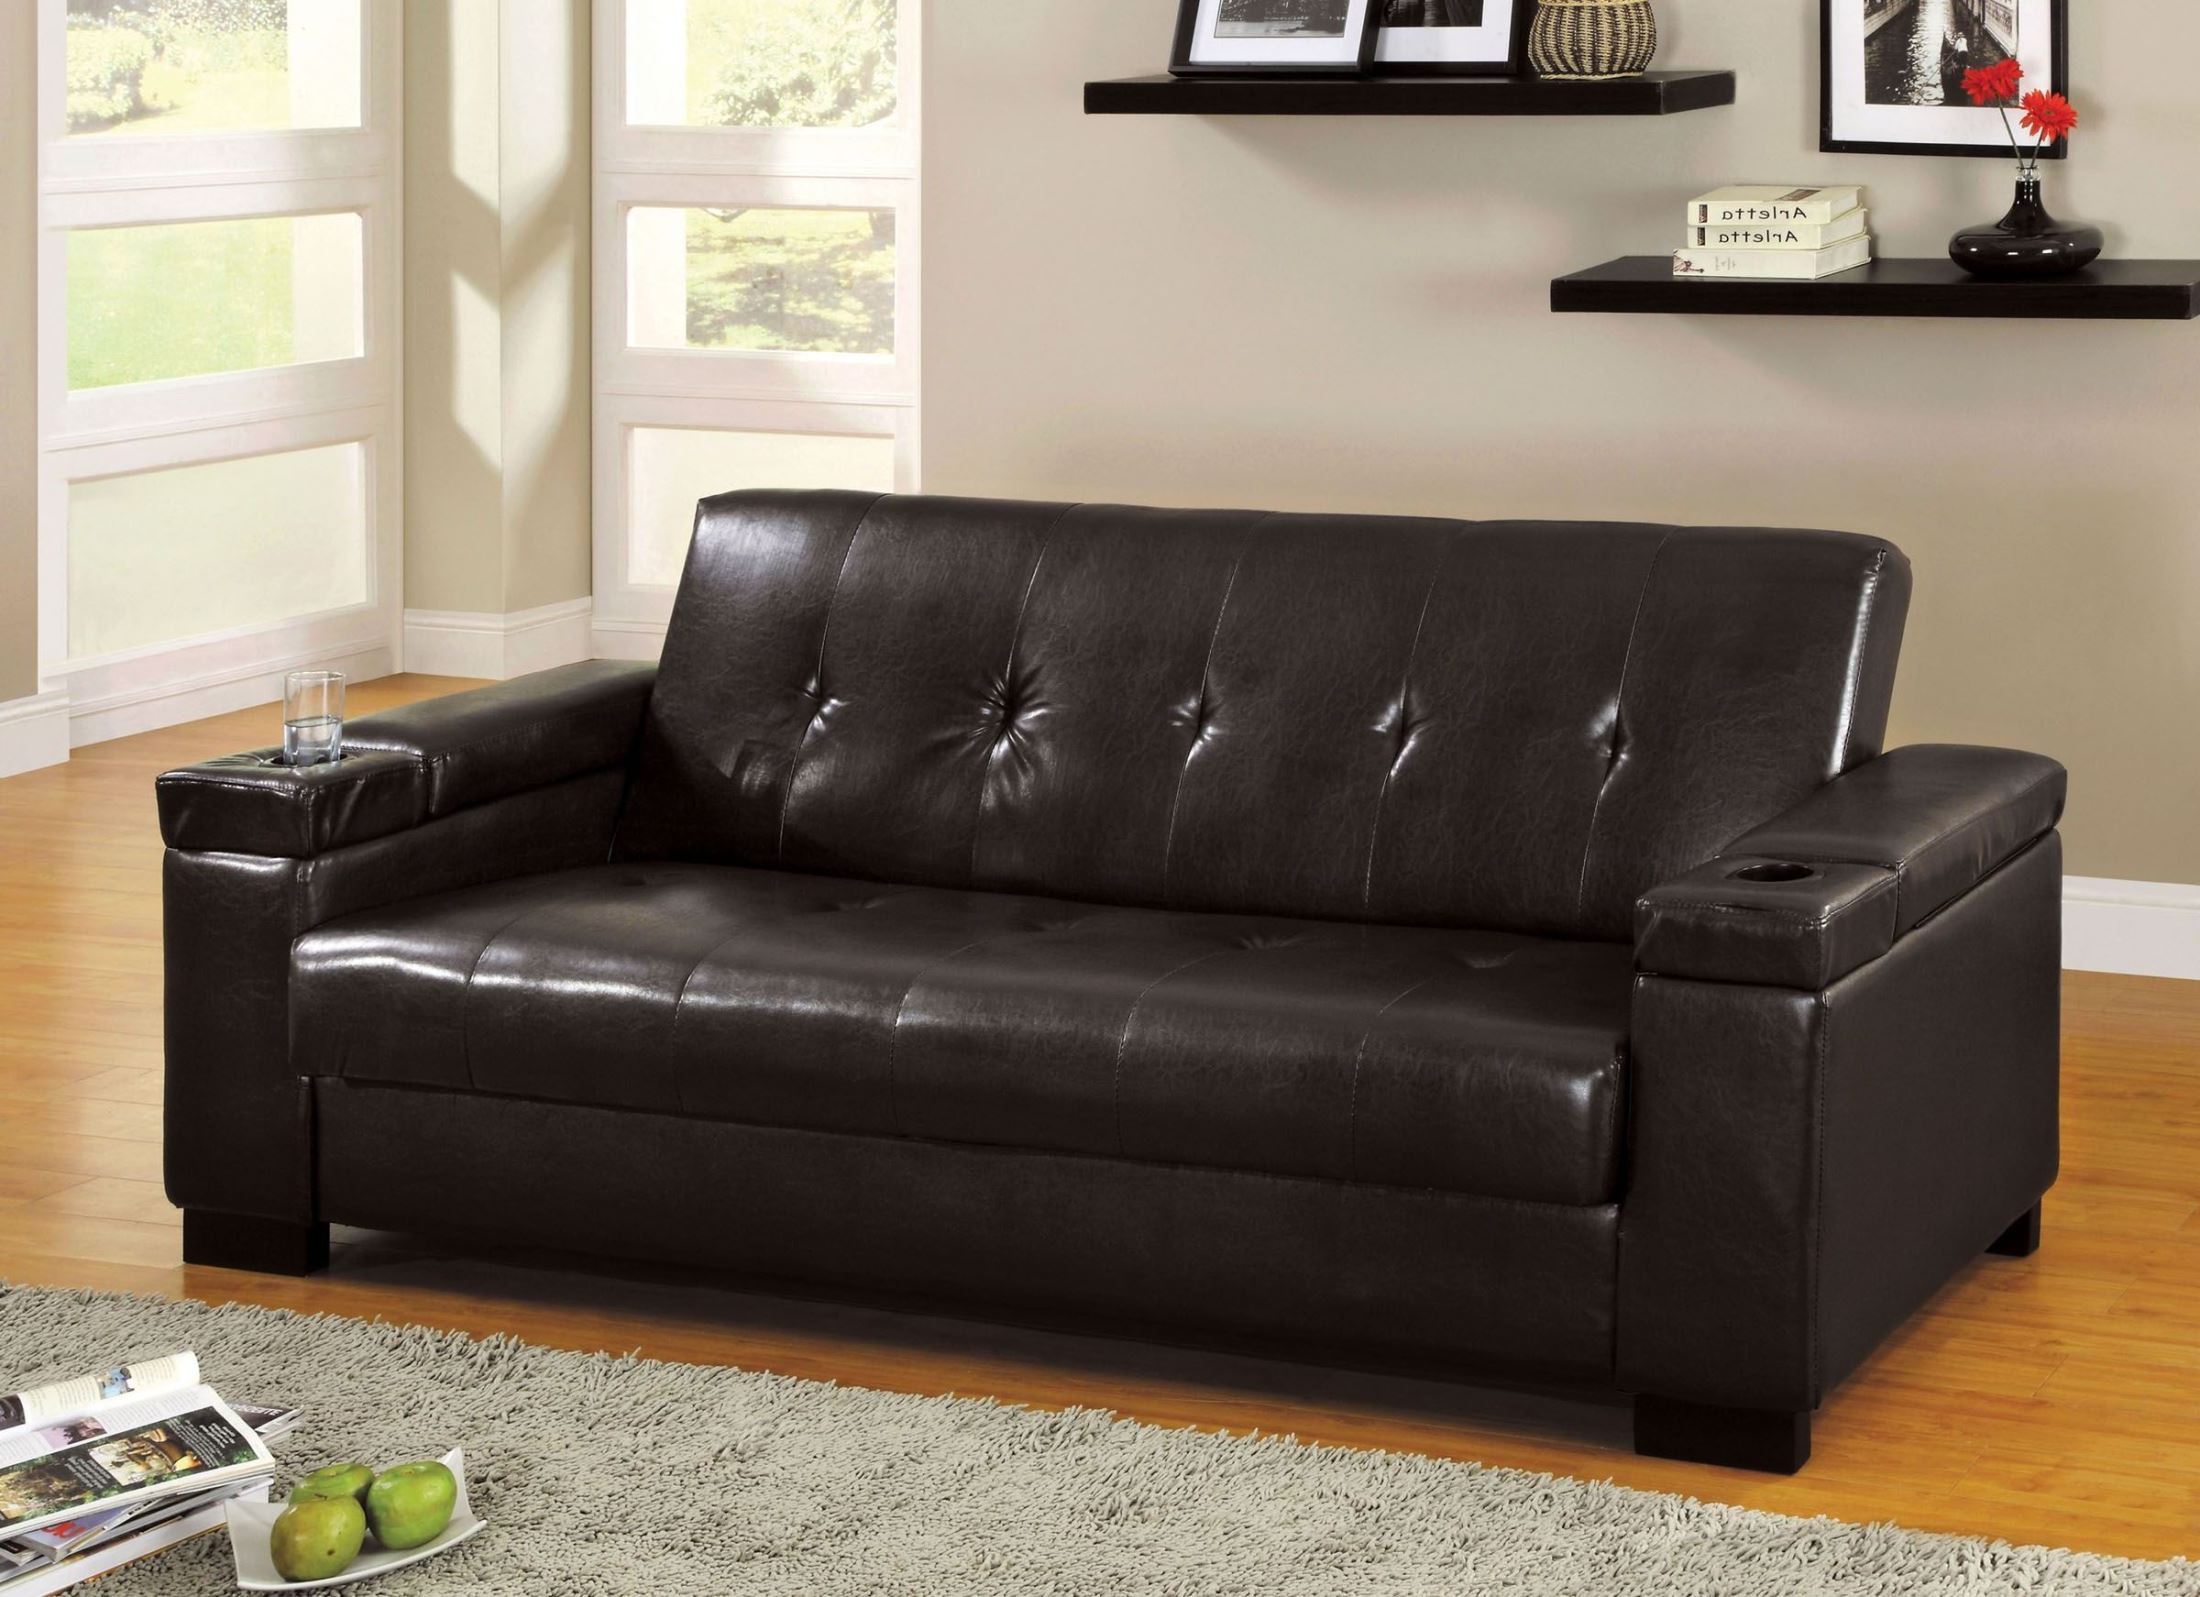 Widely Used Prato Storage Sectional Futon Sofas In Logan Leatherette Futon Storage Sofa From Furniture Of (View 14 of 20)